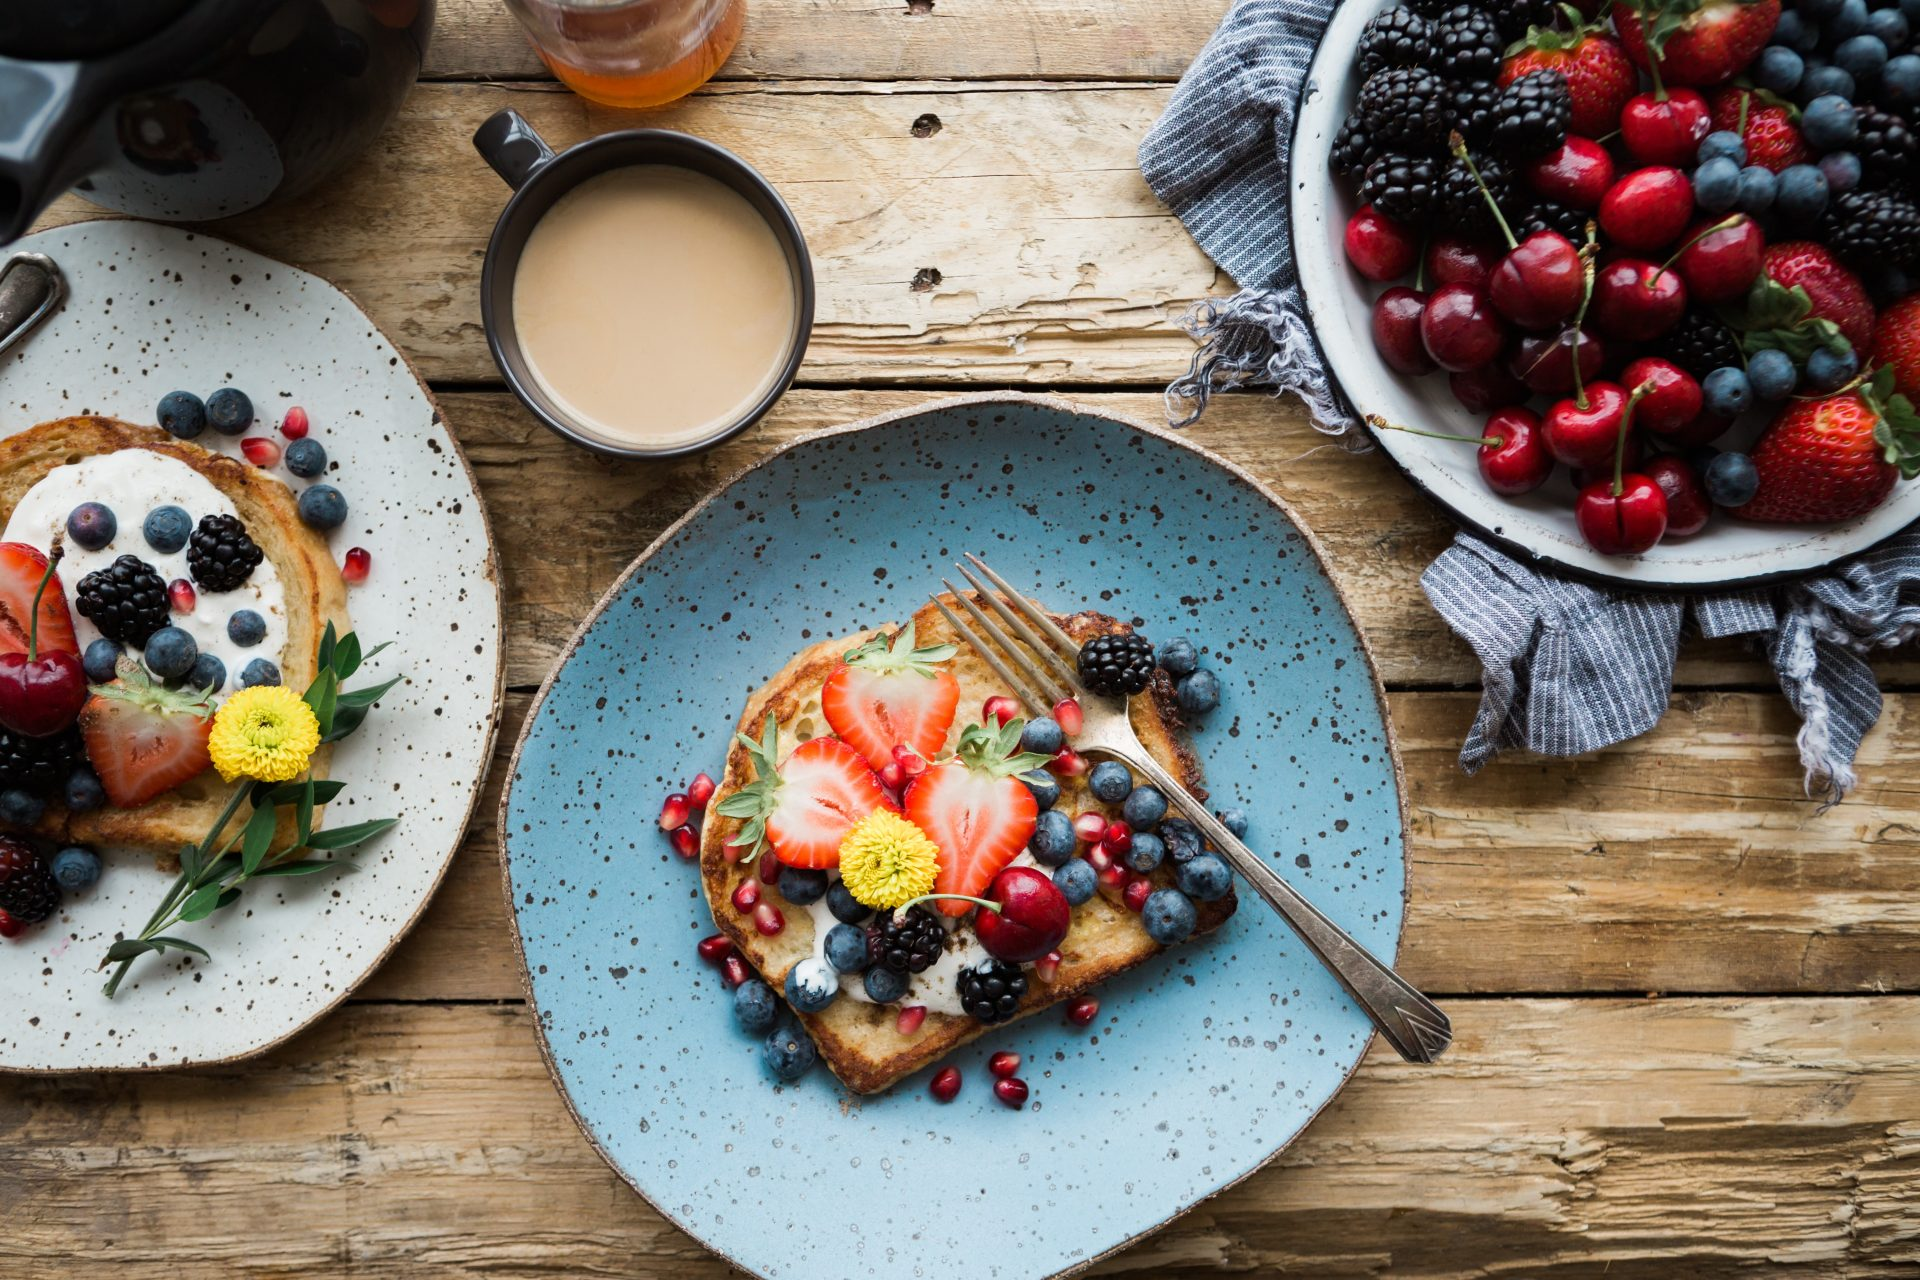 piece of toast with fruit on it on a blue plate, with a cup of coffee and fruit to the side